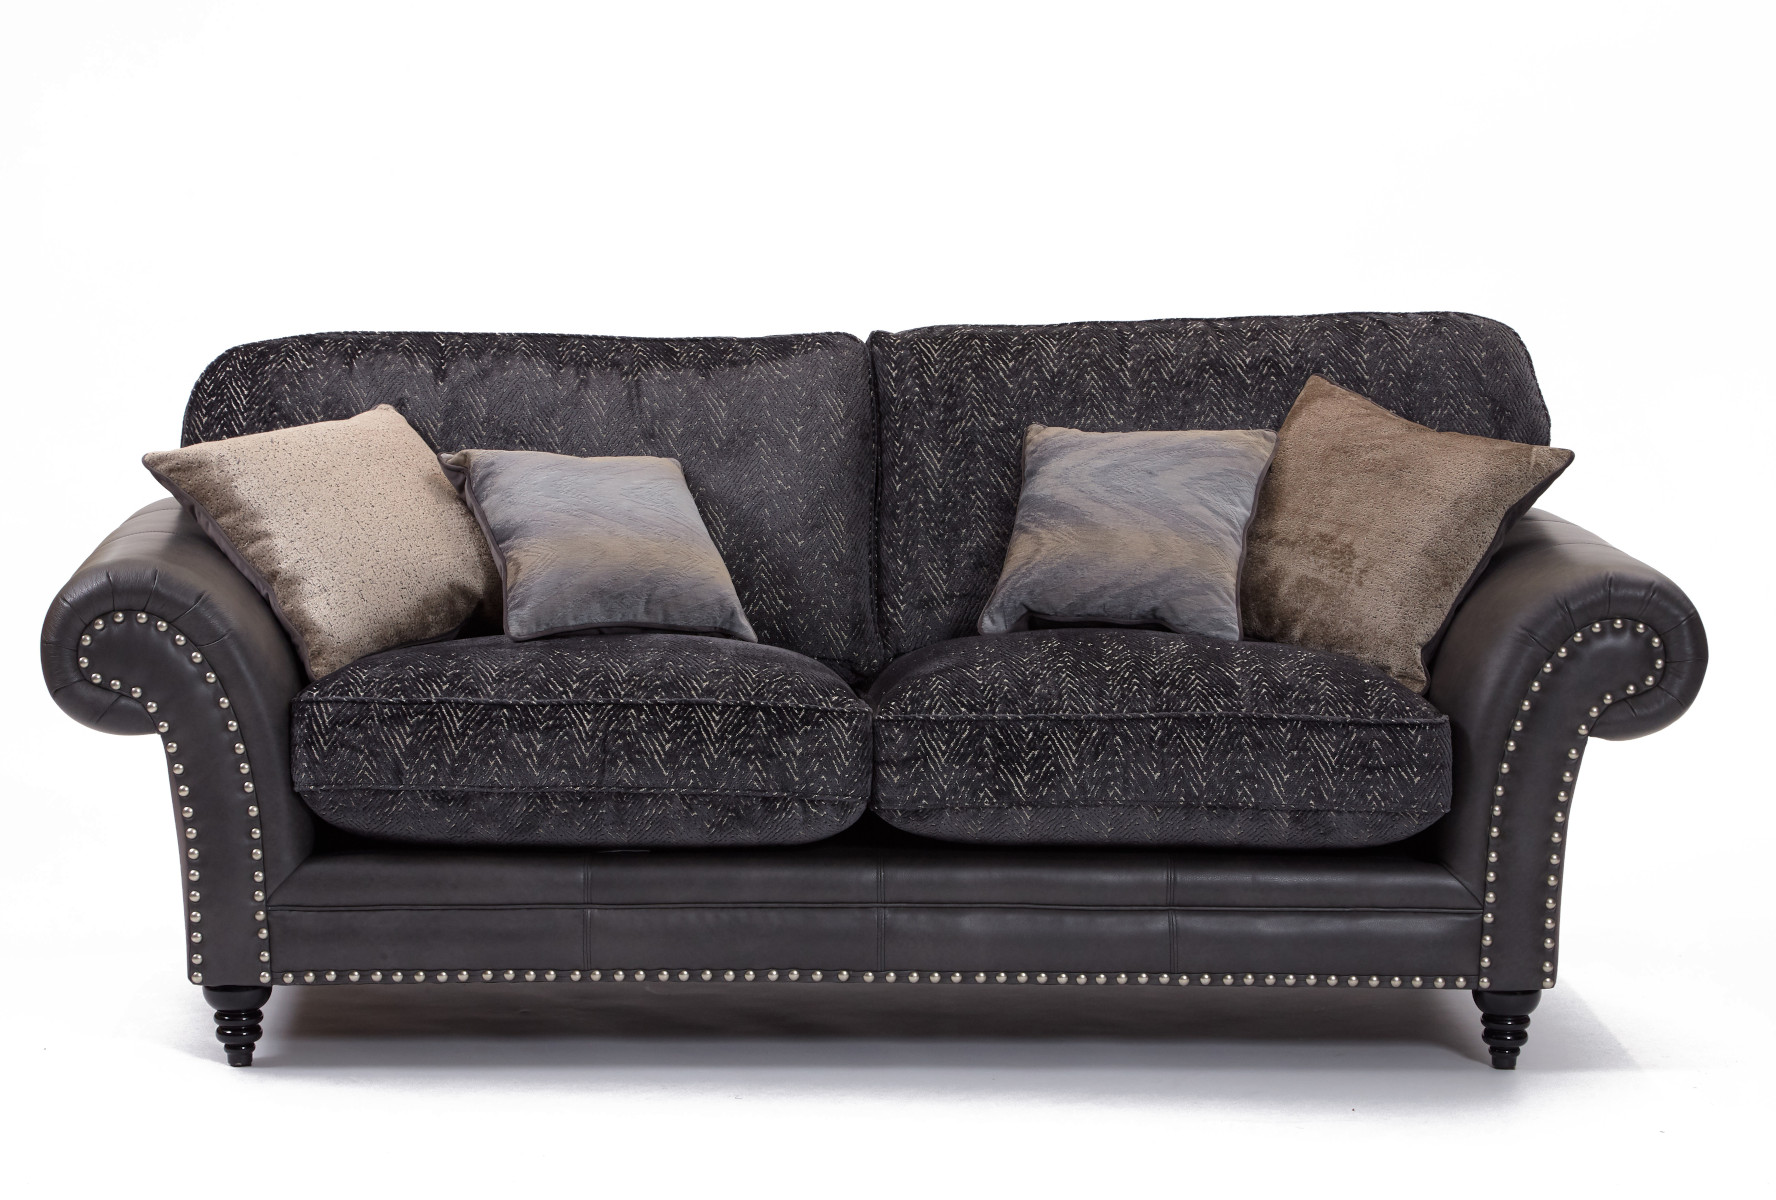 Bardot 3 Seater Sofa